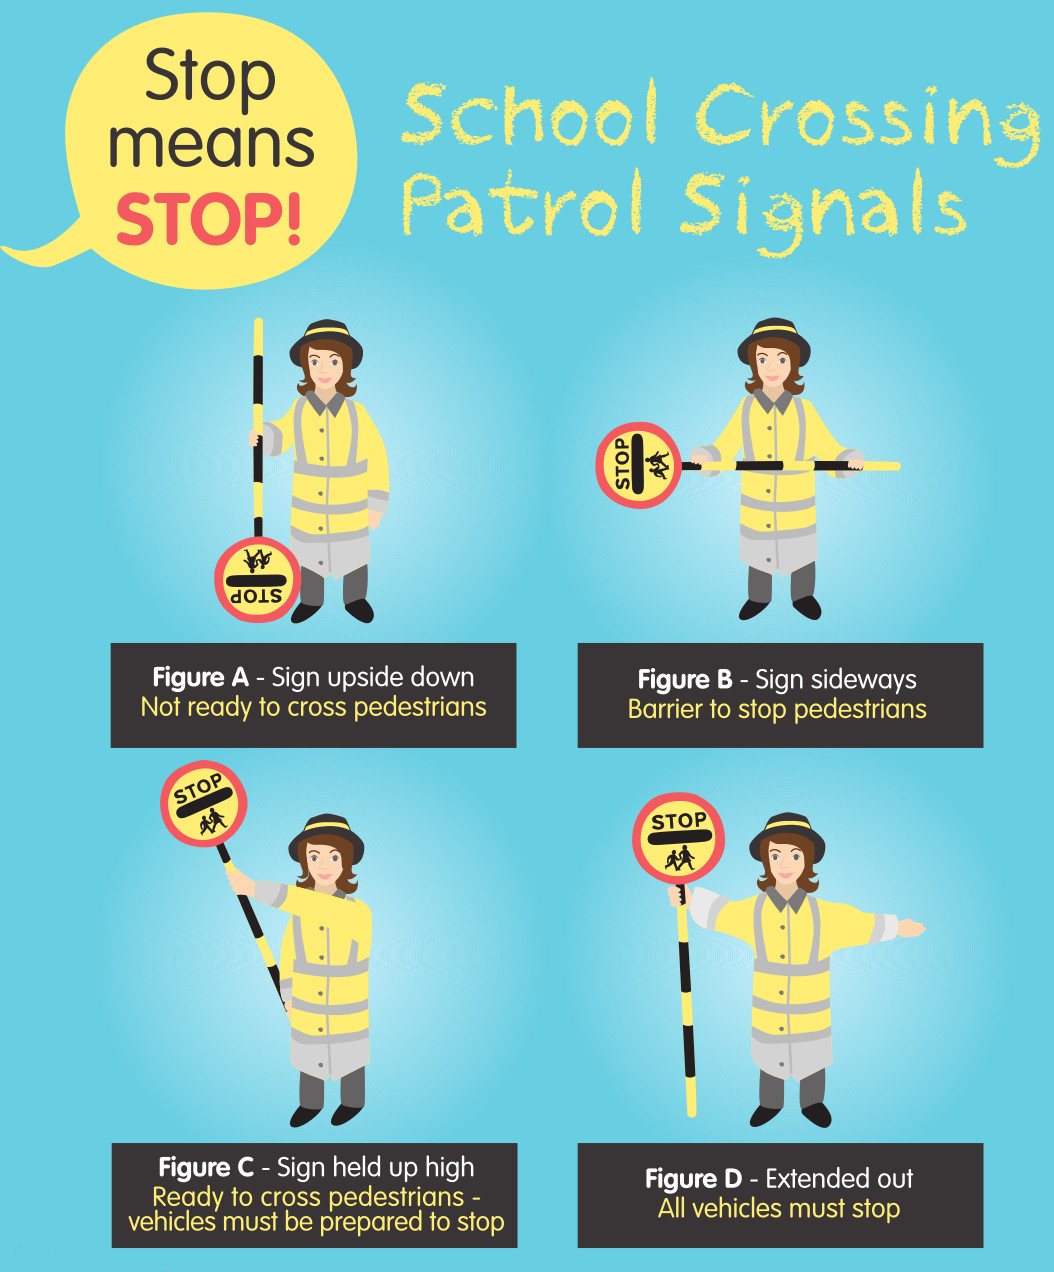 Image showing the different crossing patrol signals as described above